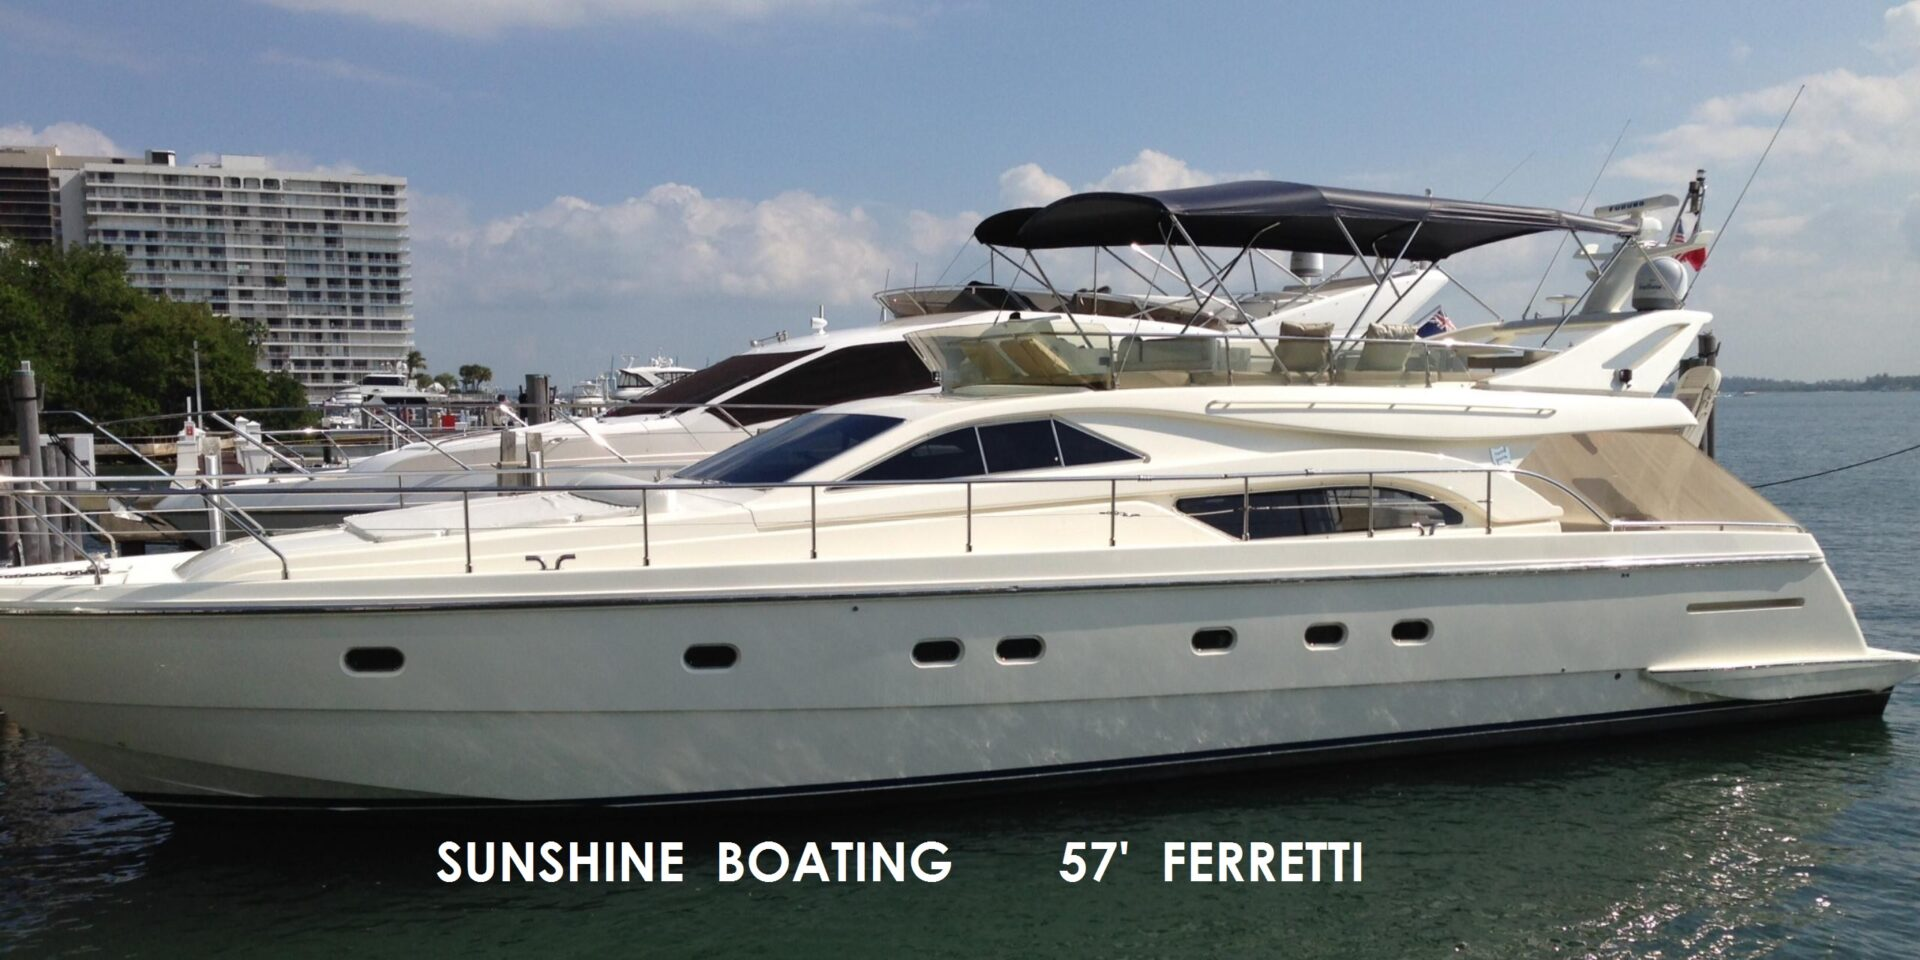 sunshine-boating-ferretti-57-a